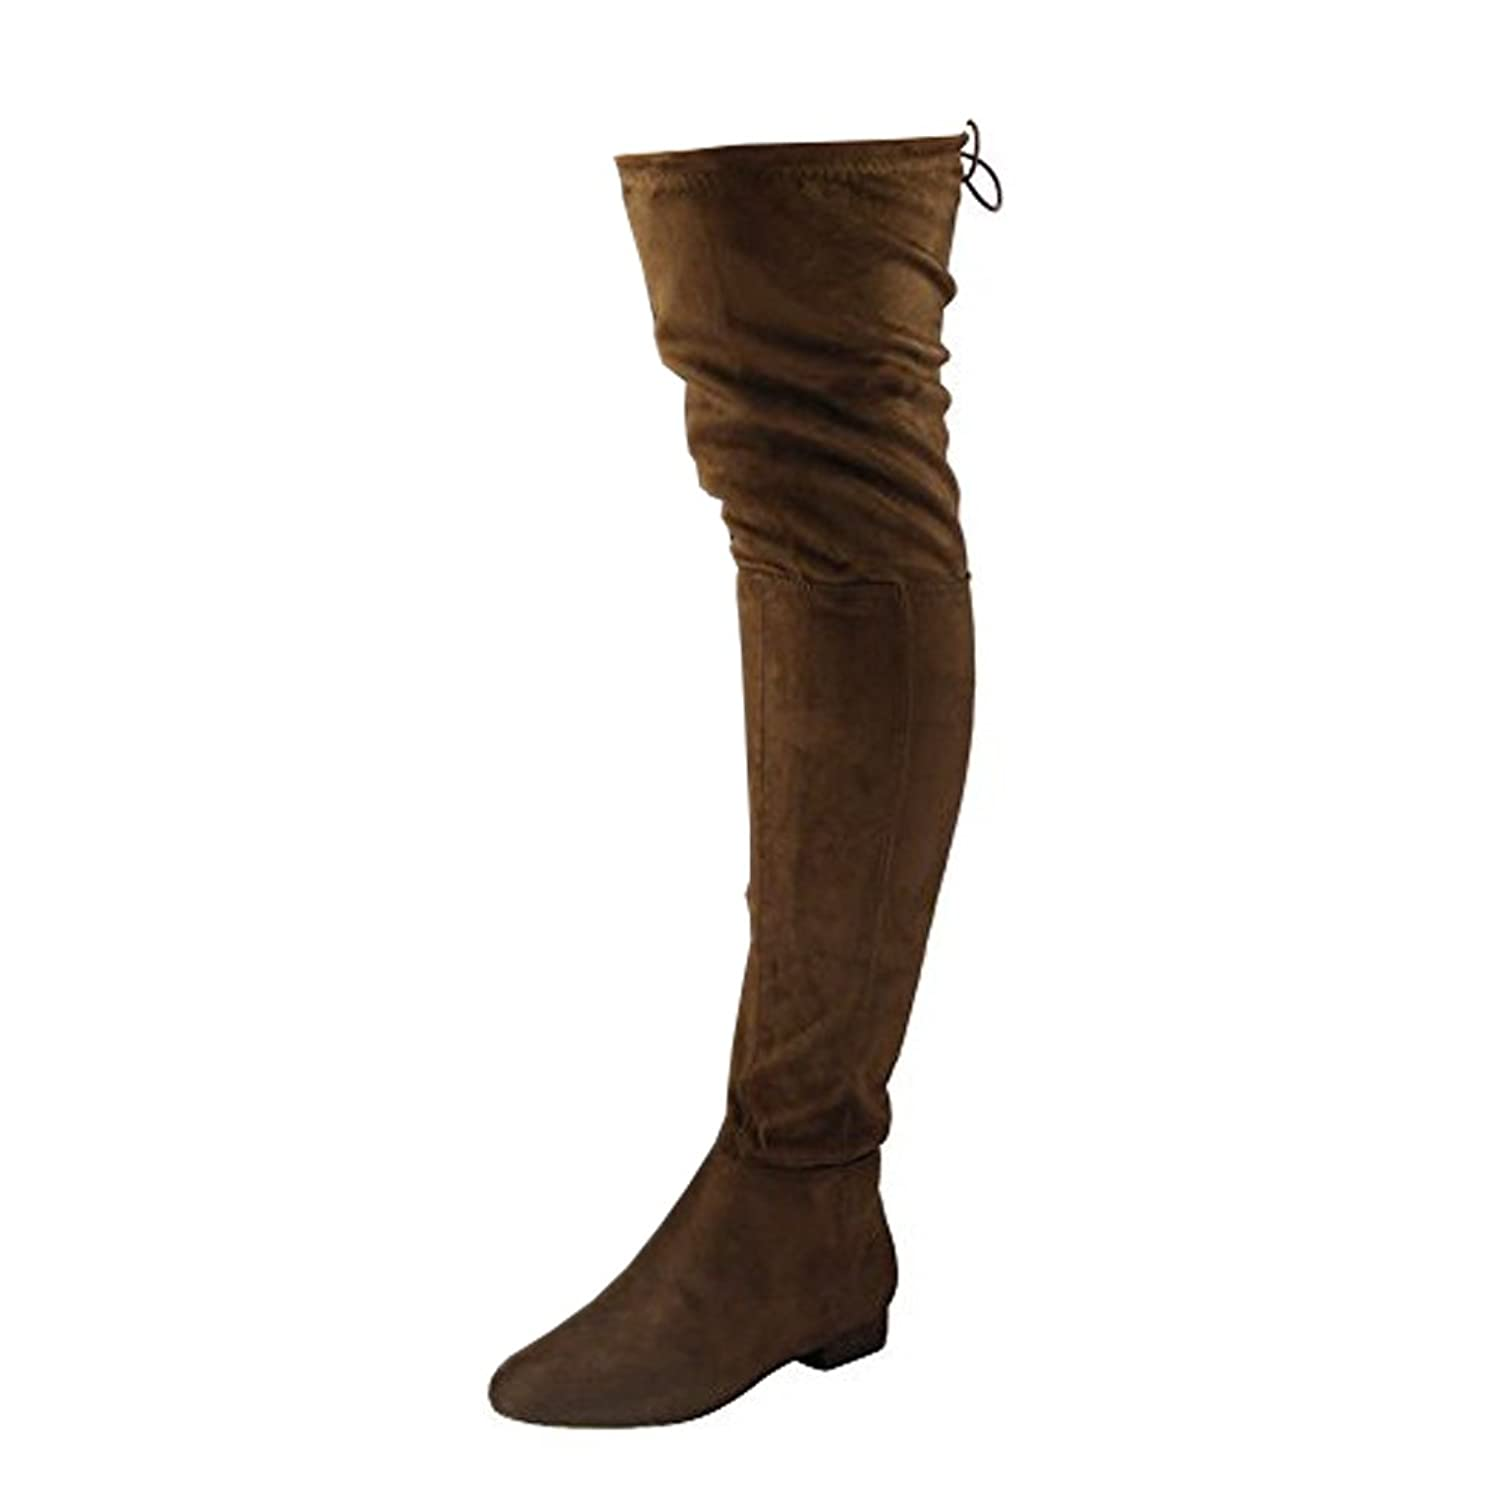 Womens Ladies Thigh High Over The Knee Low Heel Flat Lace Up Boots Shoes  Size 3